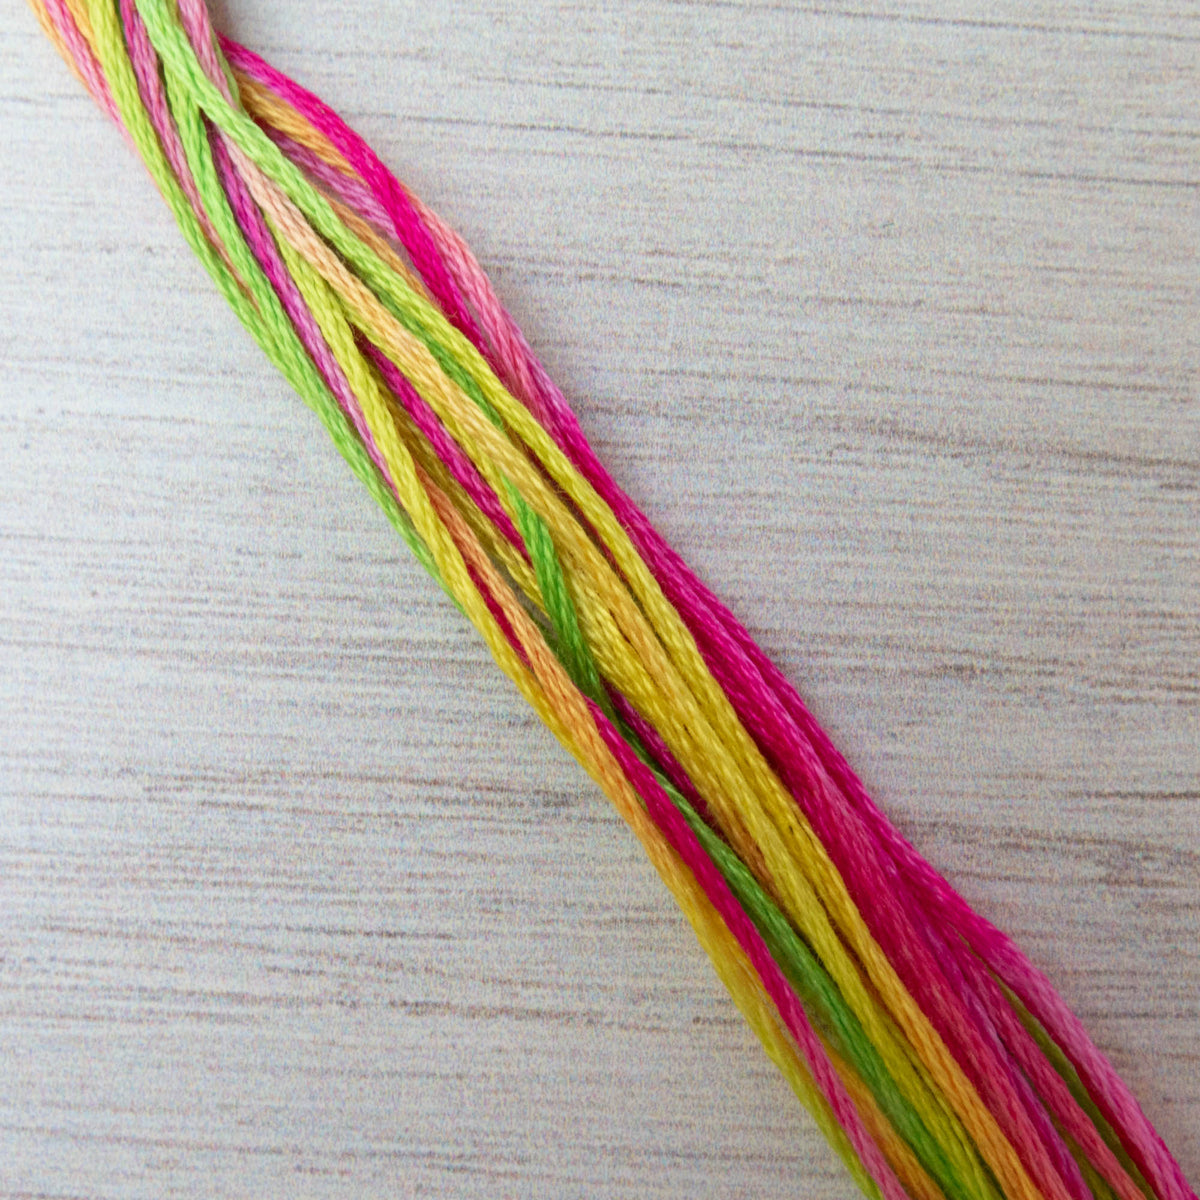 Weeks Dye Works Hand Over Dyed Embroidery Floss - Calypso (4143)